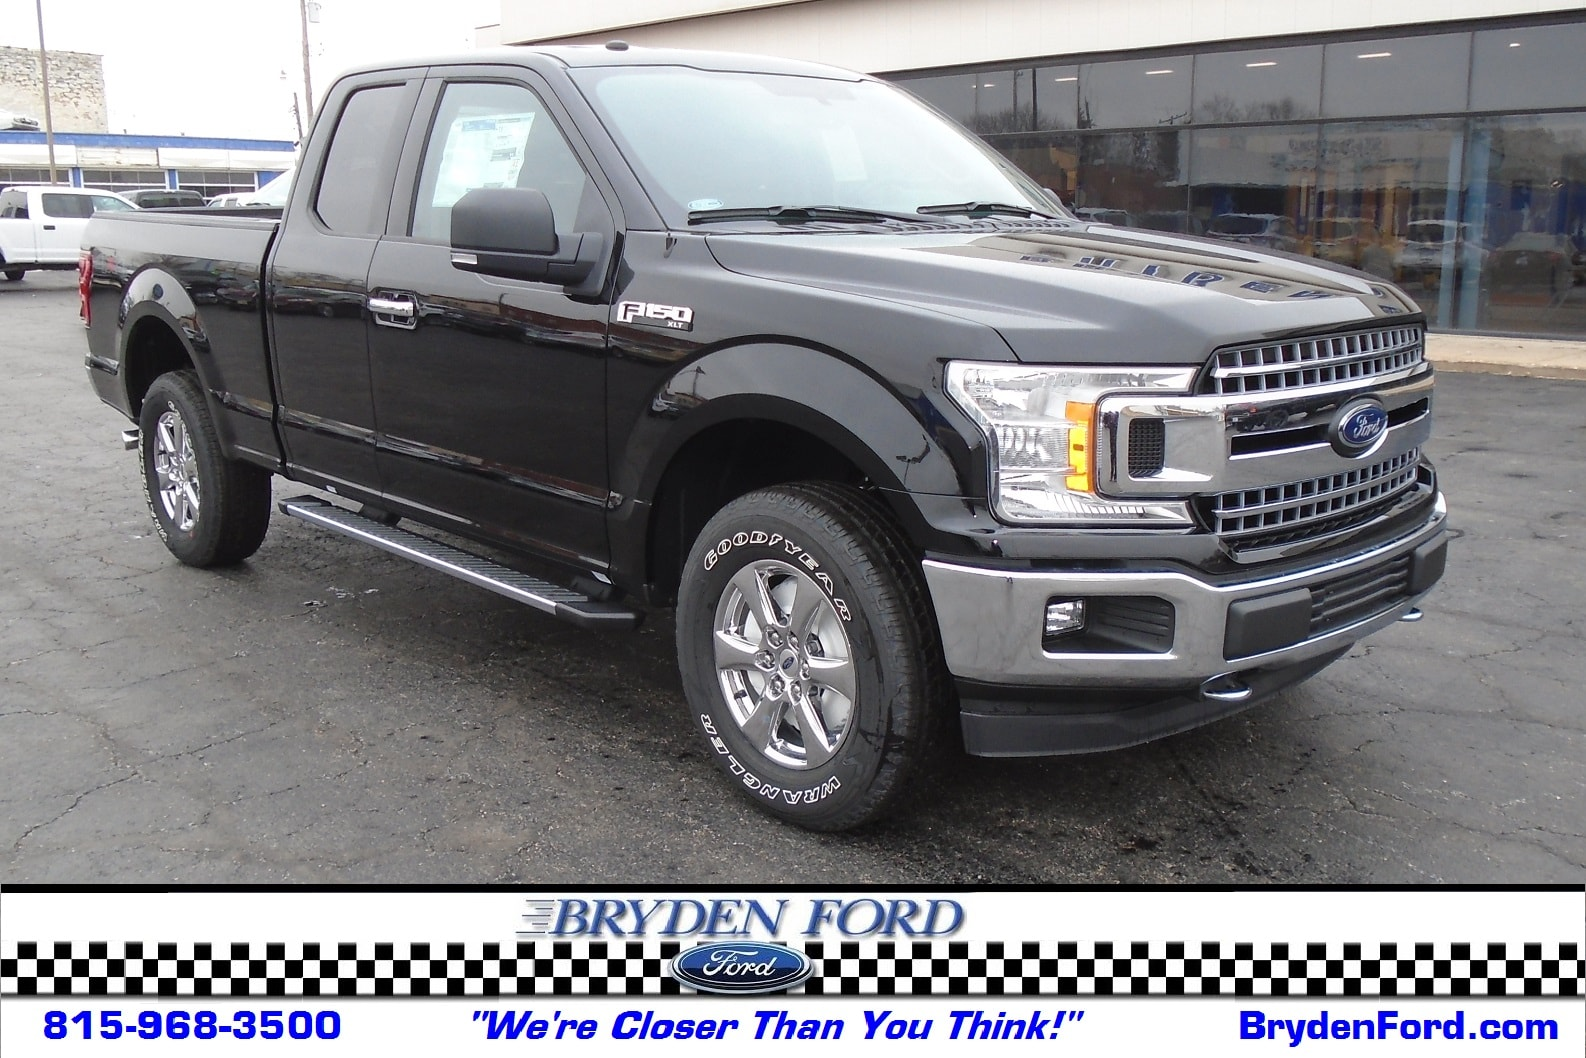 2018 Ford F150 SuperCrew XLT 4X4 5.5' Bed Truck